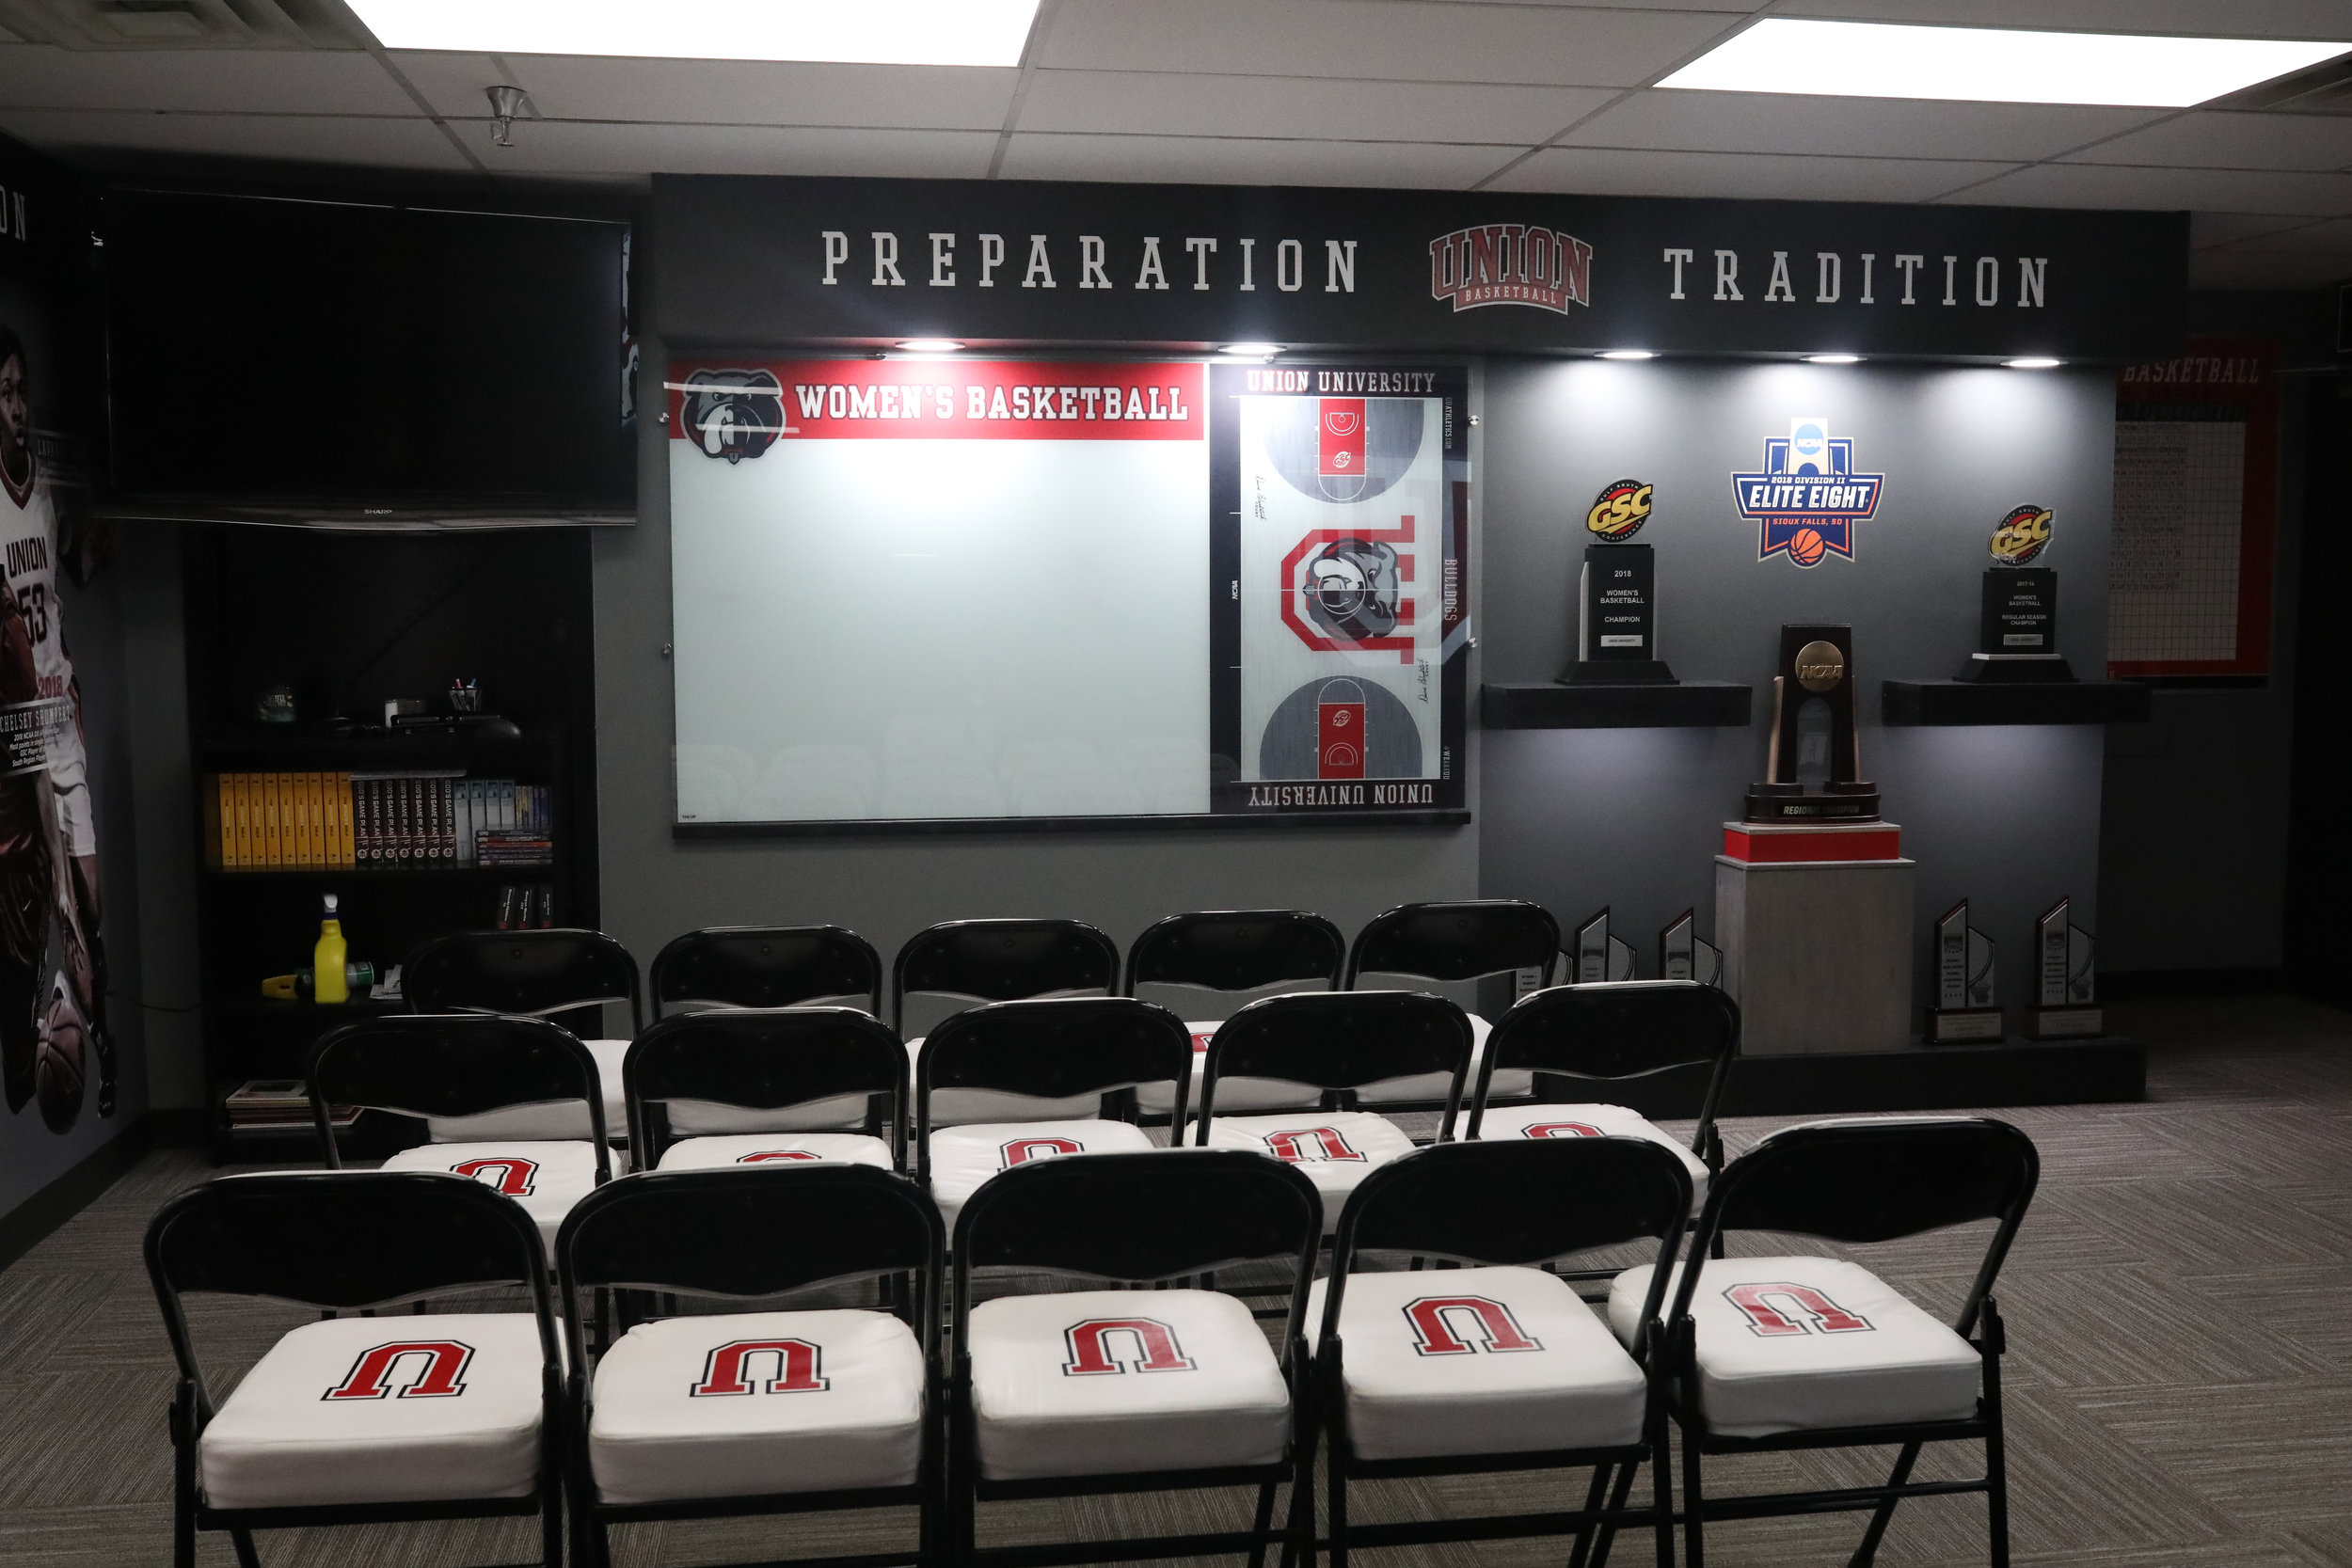 After-Union-University_Womens-Basketball-Locker-Room_Interior-Branding_LSIGraphics_Memphis-TN-7 ..